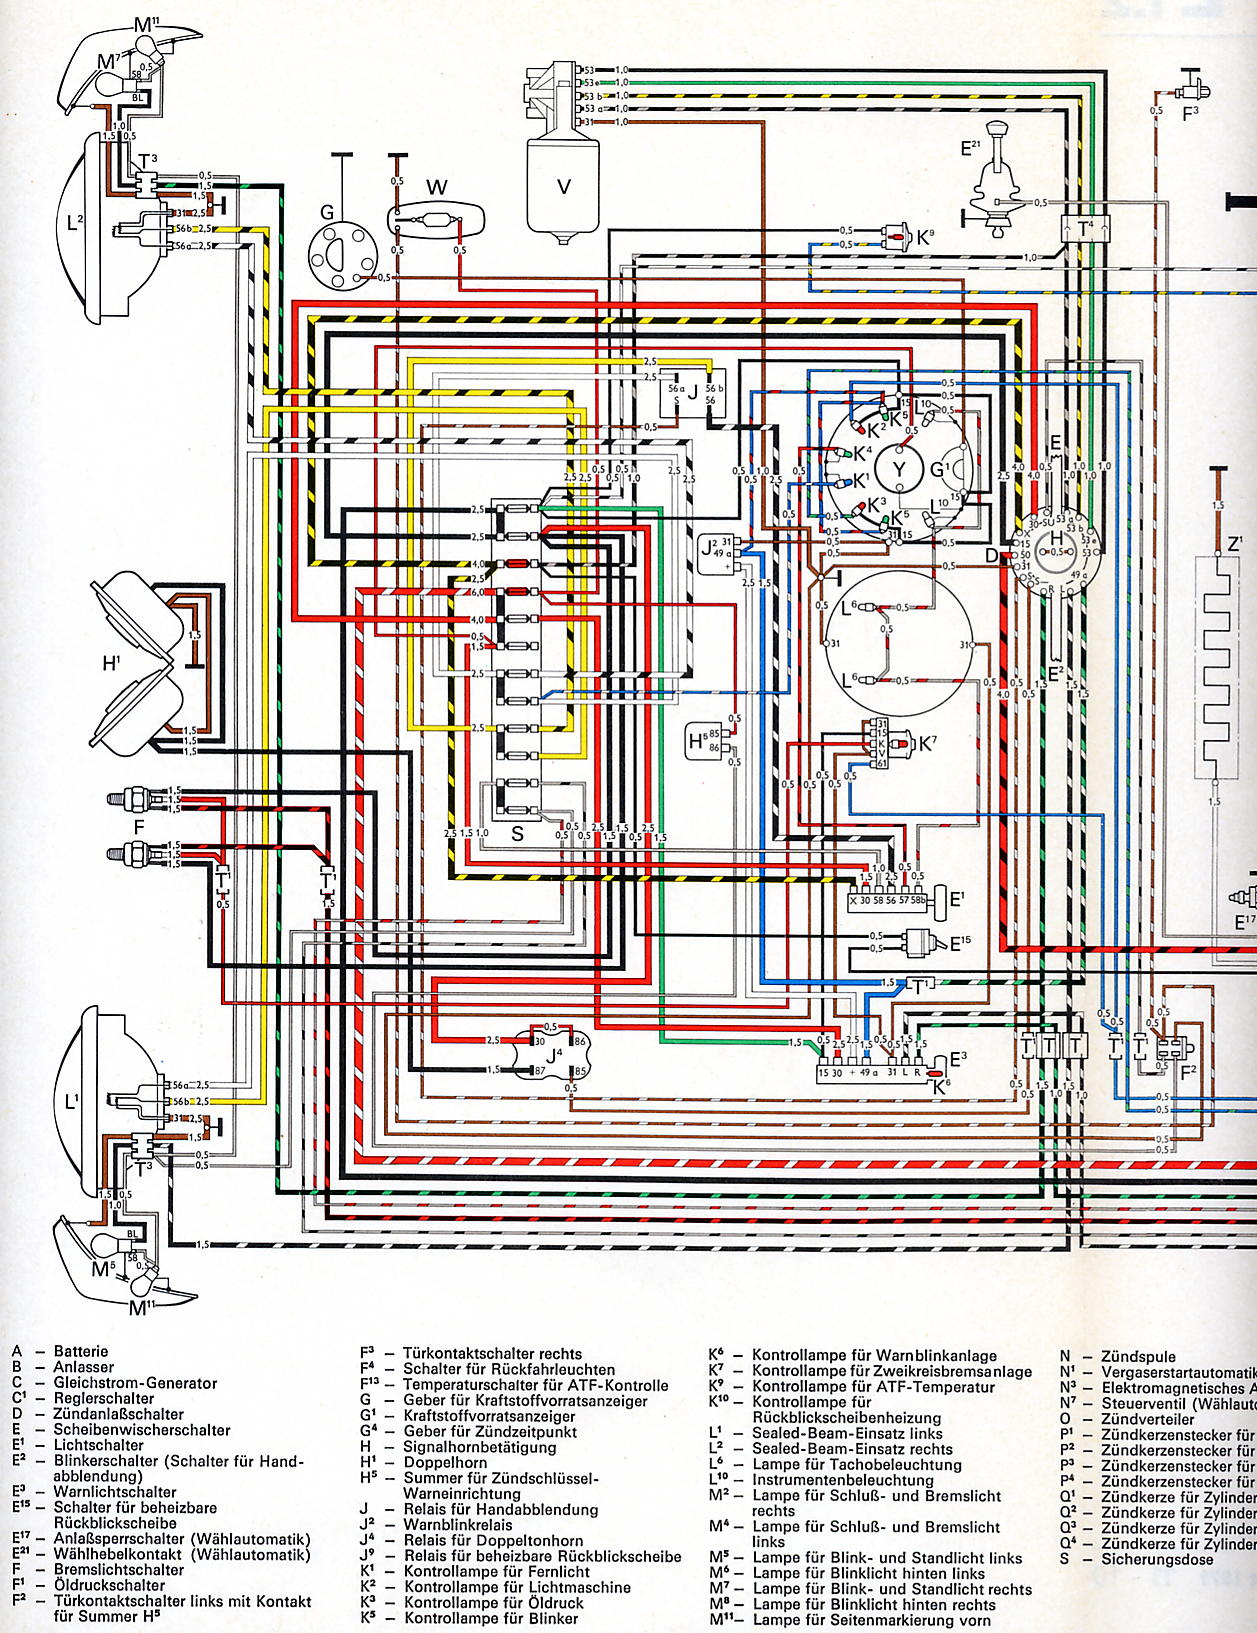 Karmann_Ghia_USA_from_August_1971 1 wiring diagram shoptalkforums com vw mk1 wiring diagram at n-0.co